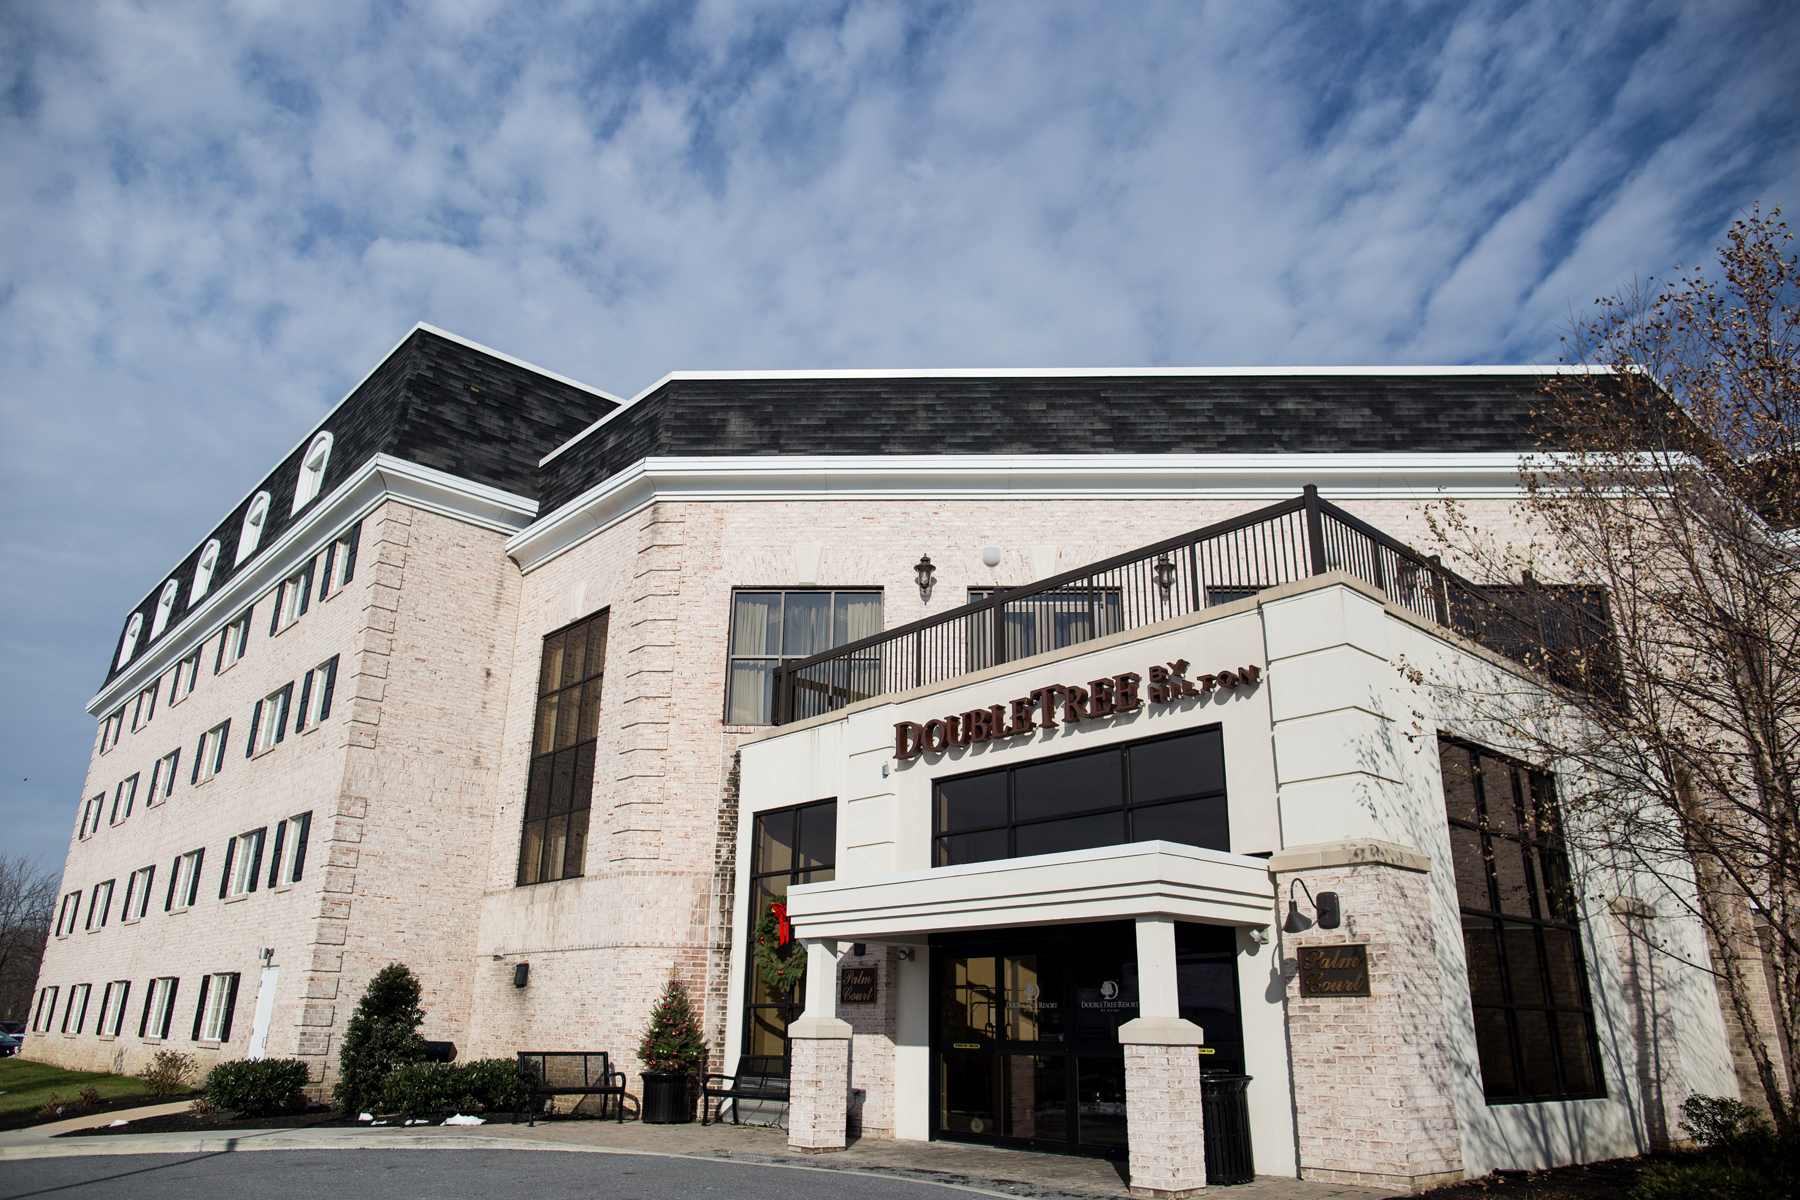 DoubleTree Resort - 2400 Willow Street Pike, Lancaster, PA 17602 |  (717) 464-2711